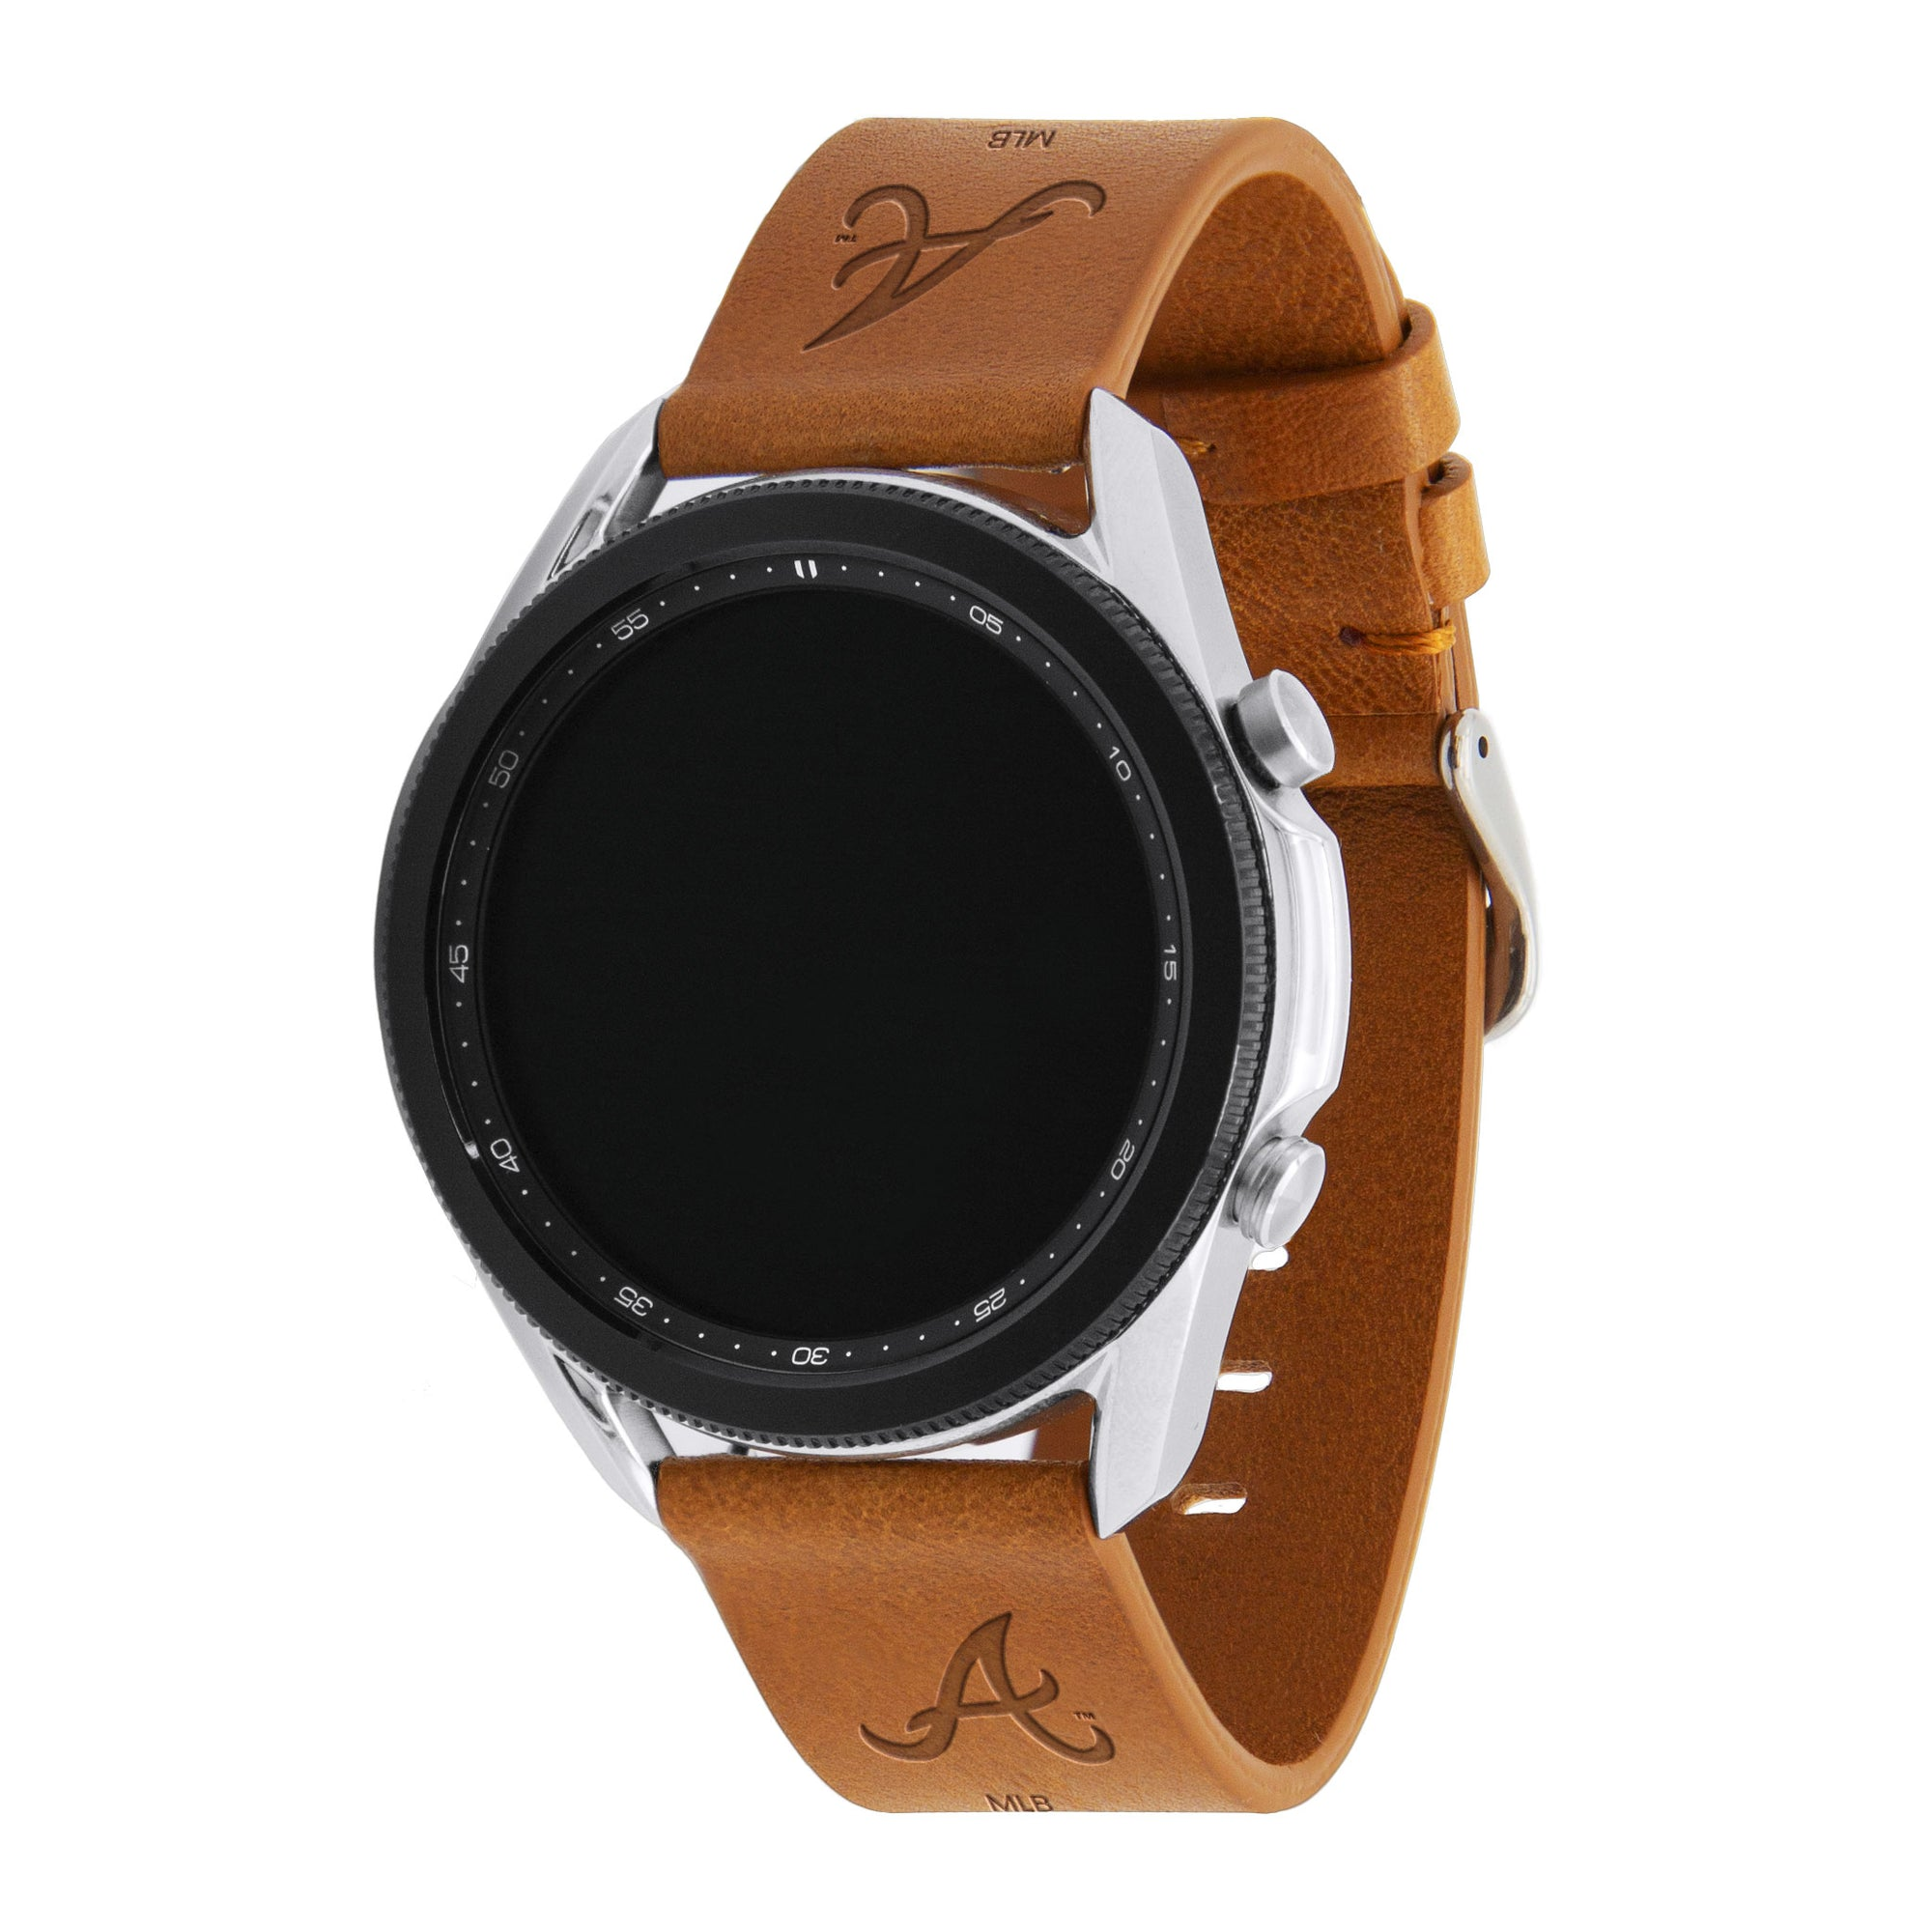 Atlanta Braves Quick Change Leather Watch Bands - AffinityBands